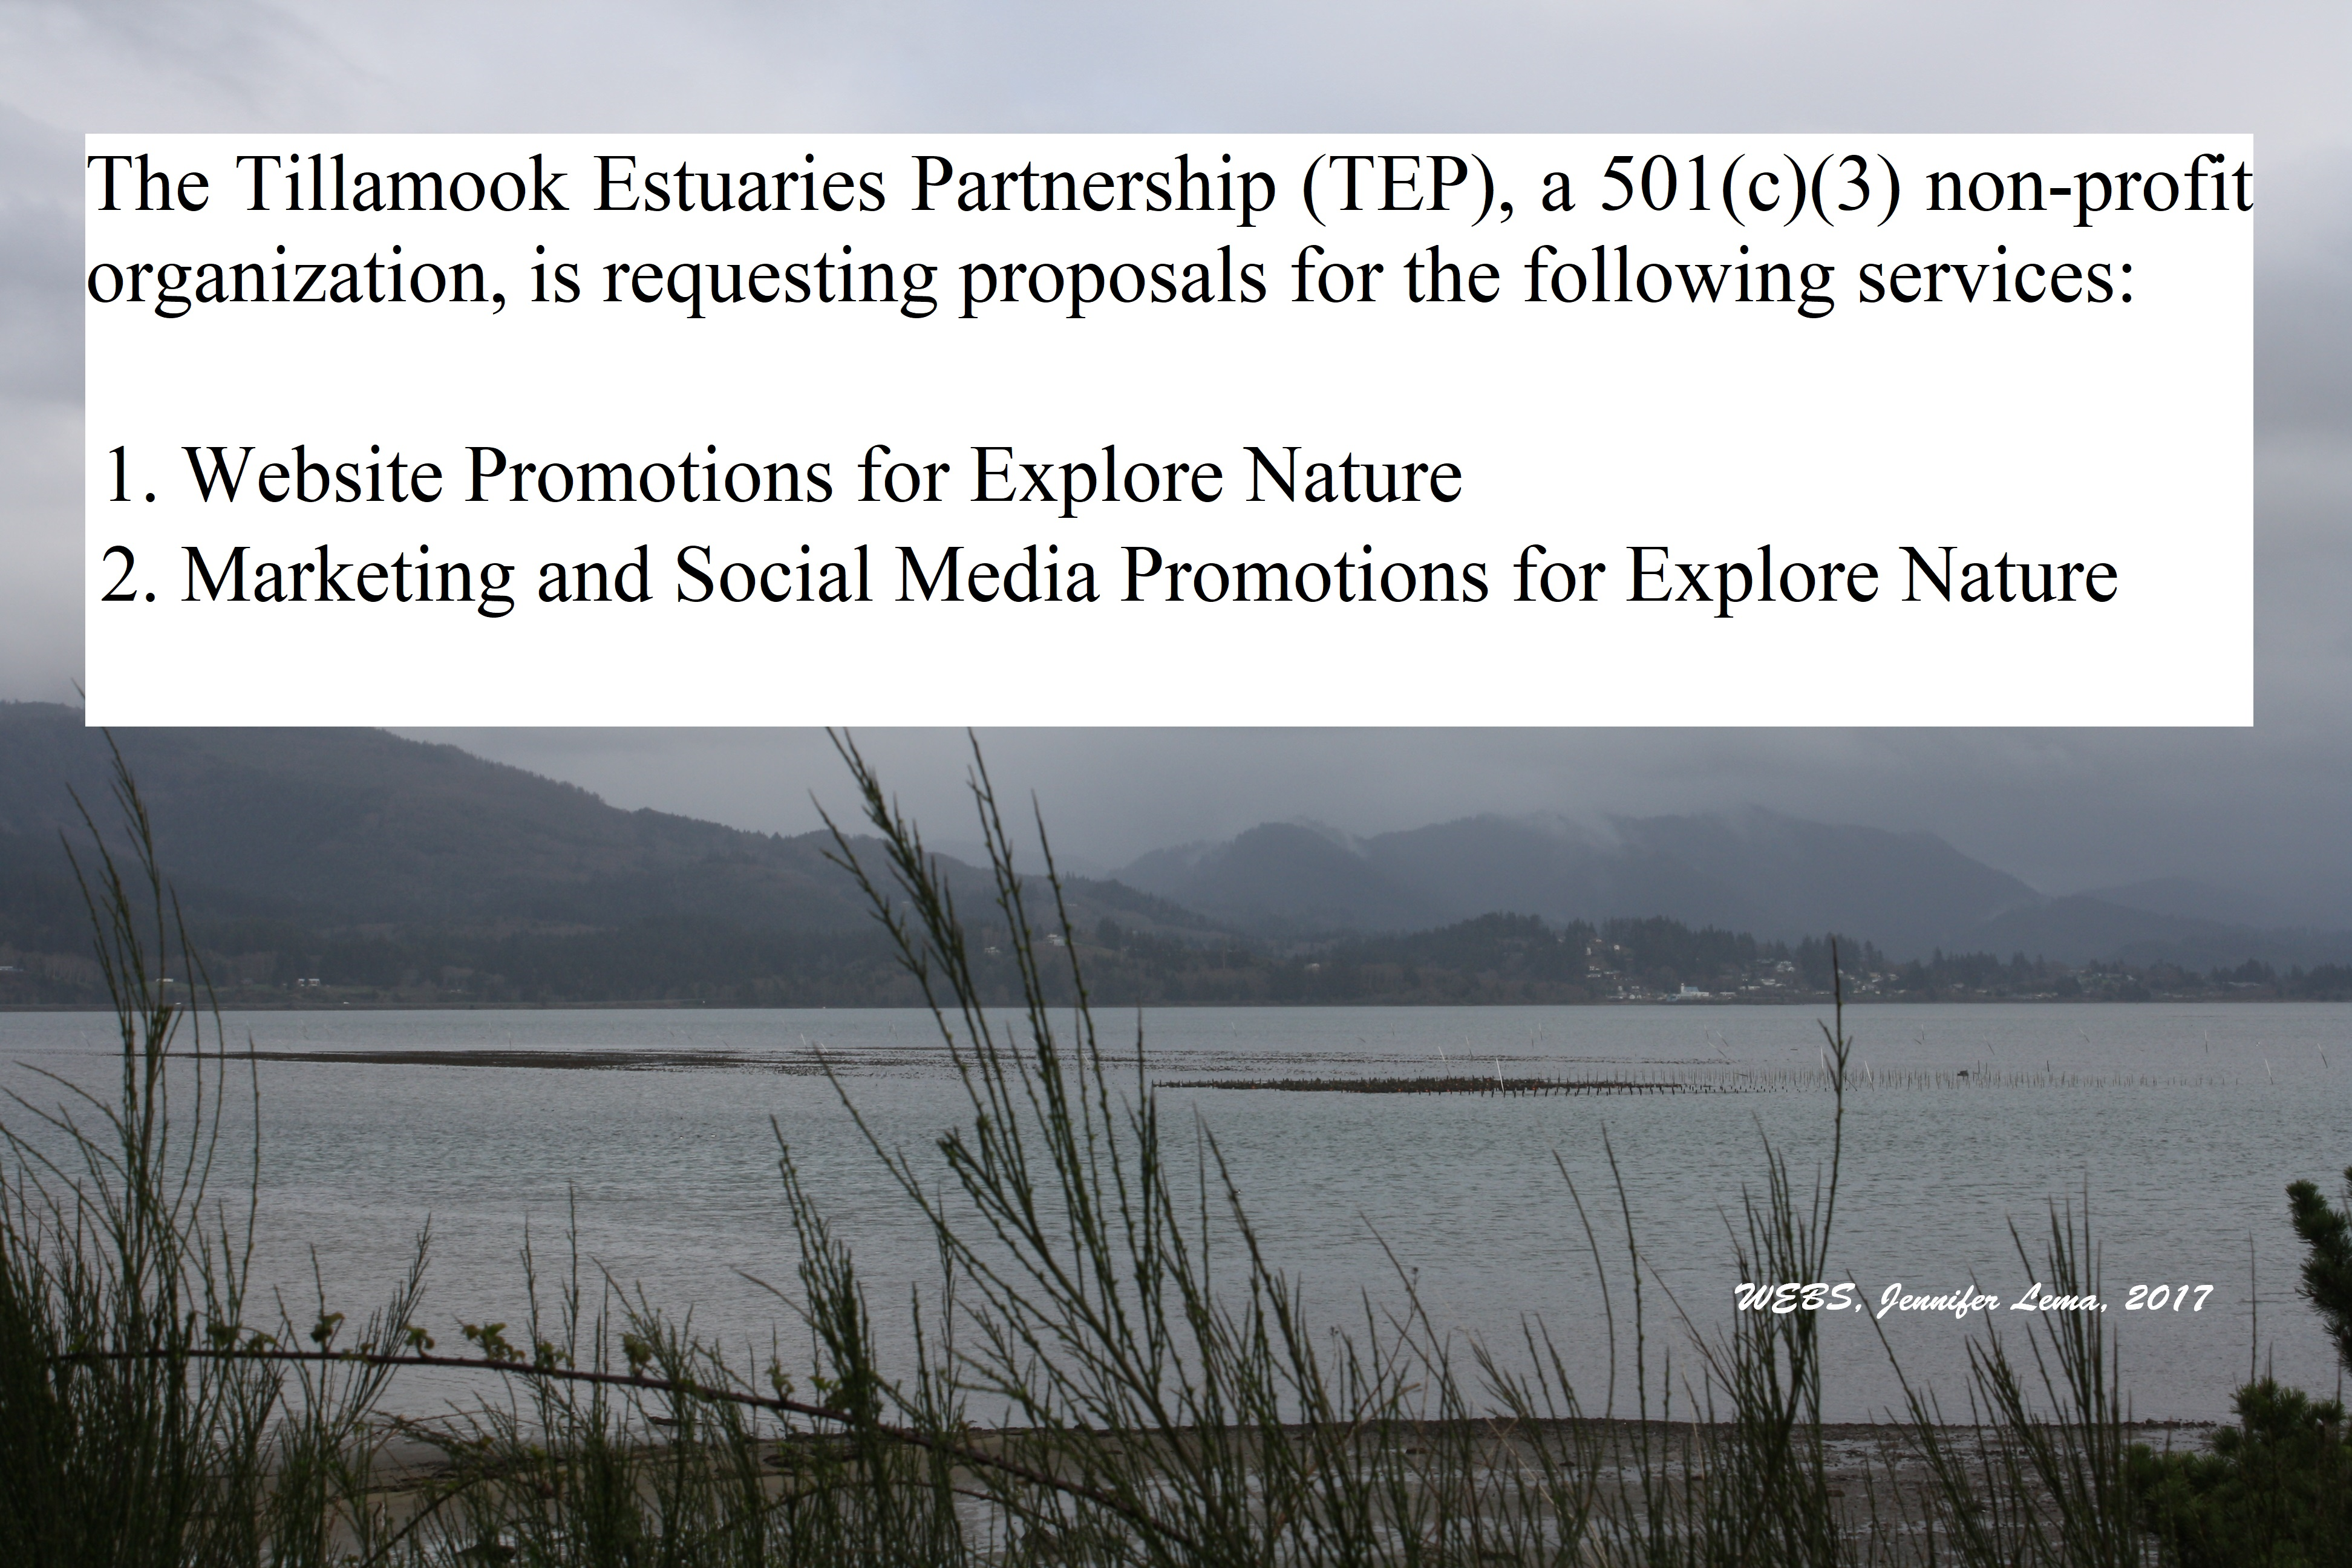 Request for Proposals - Explore Nature Website Marketing, Promotions